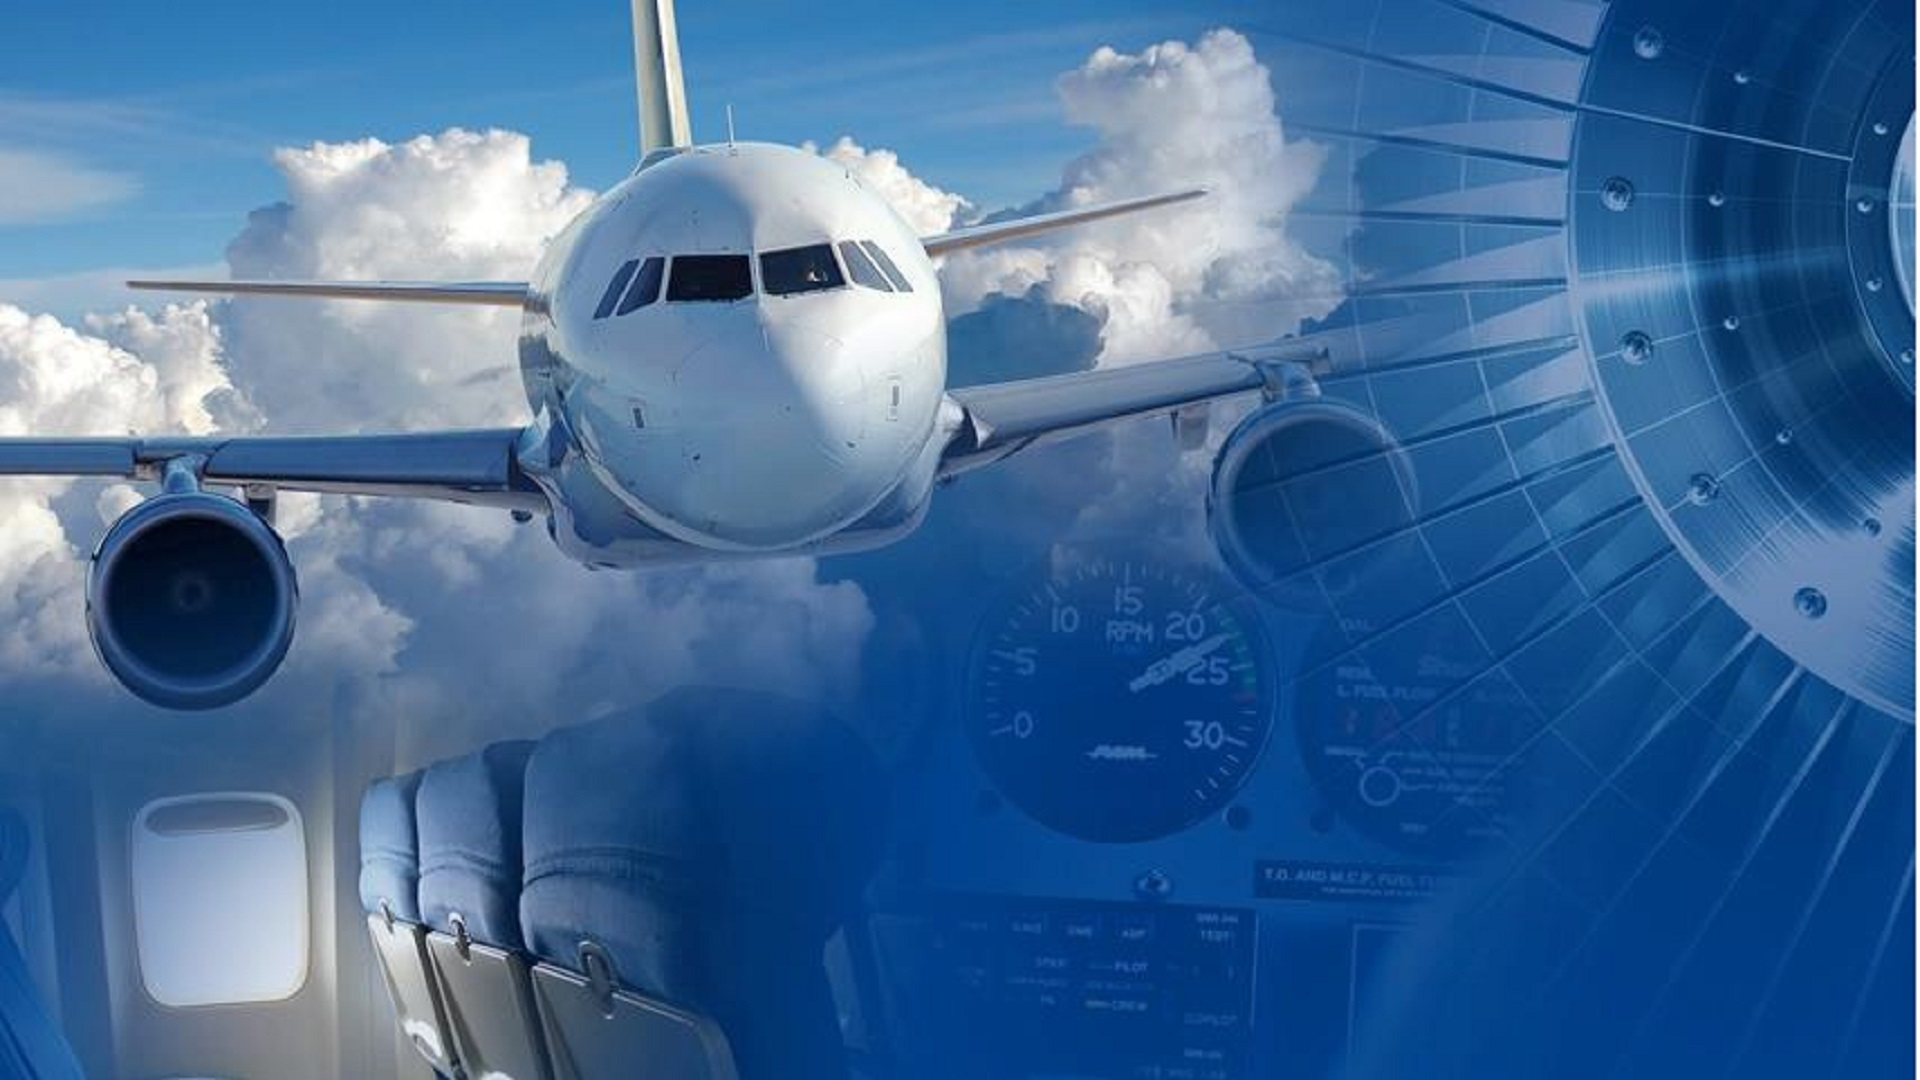 Haryana to focus on aviation as thrust sector in new industrialpolicy